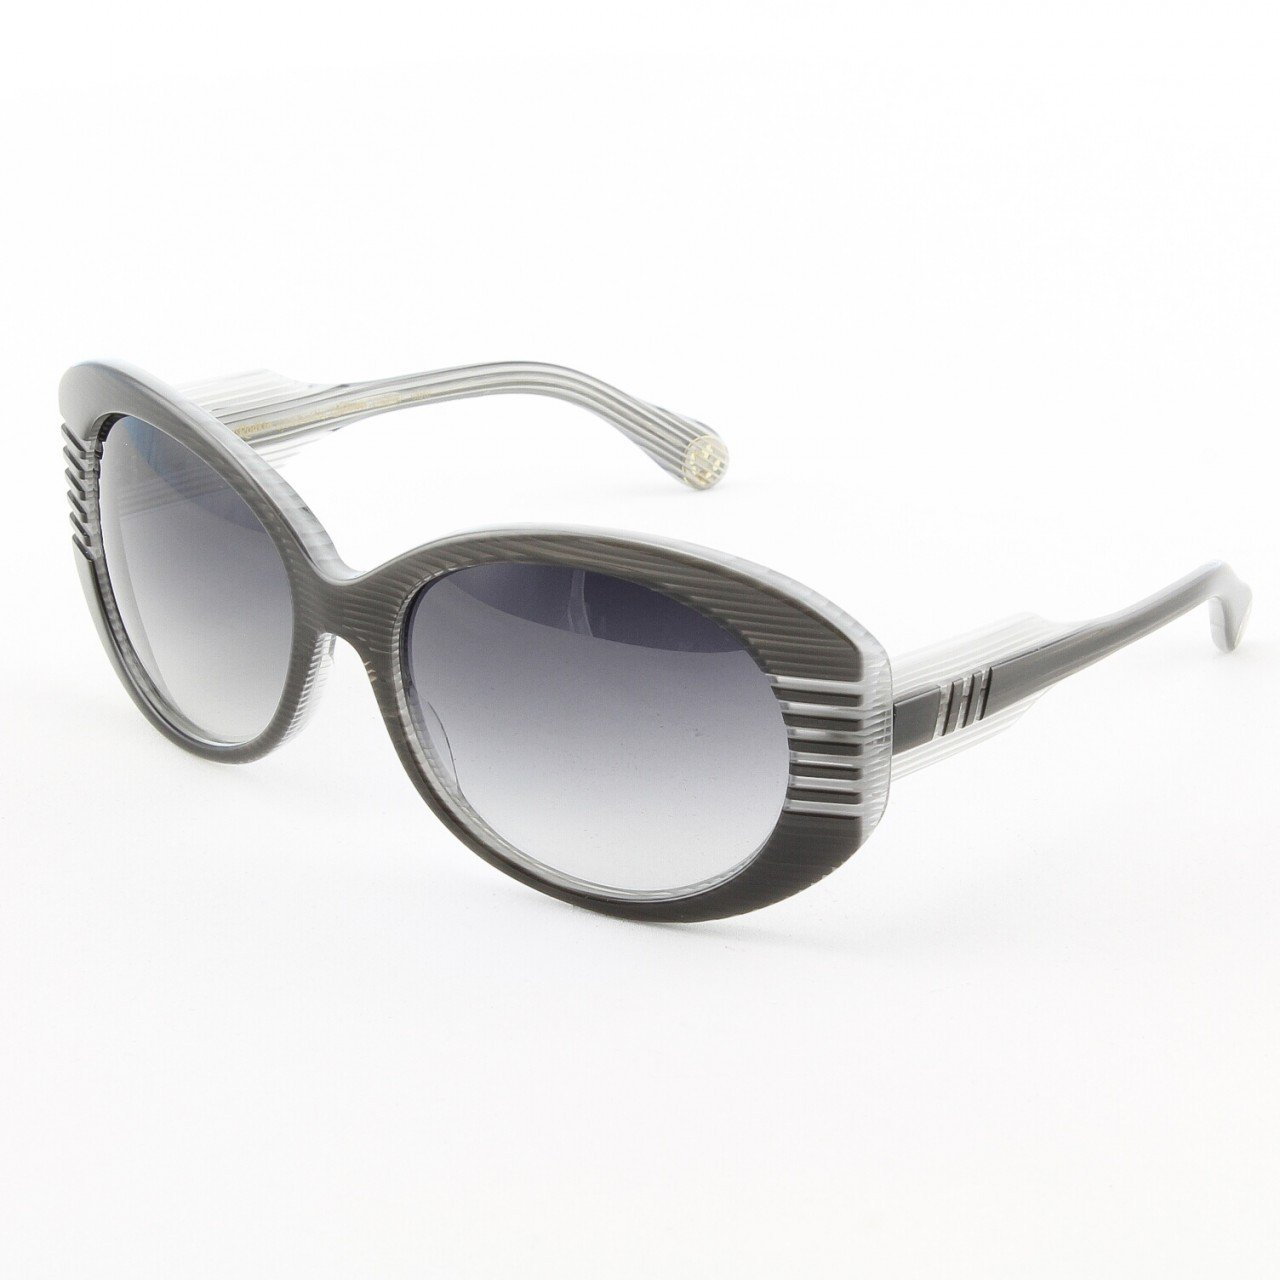 Loree Rodkin Lindsey Sunglasses by Sama Col. Slate with Gray Gradient Lenses